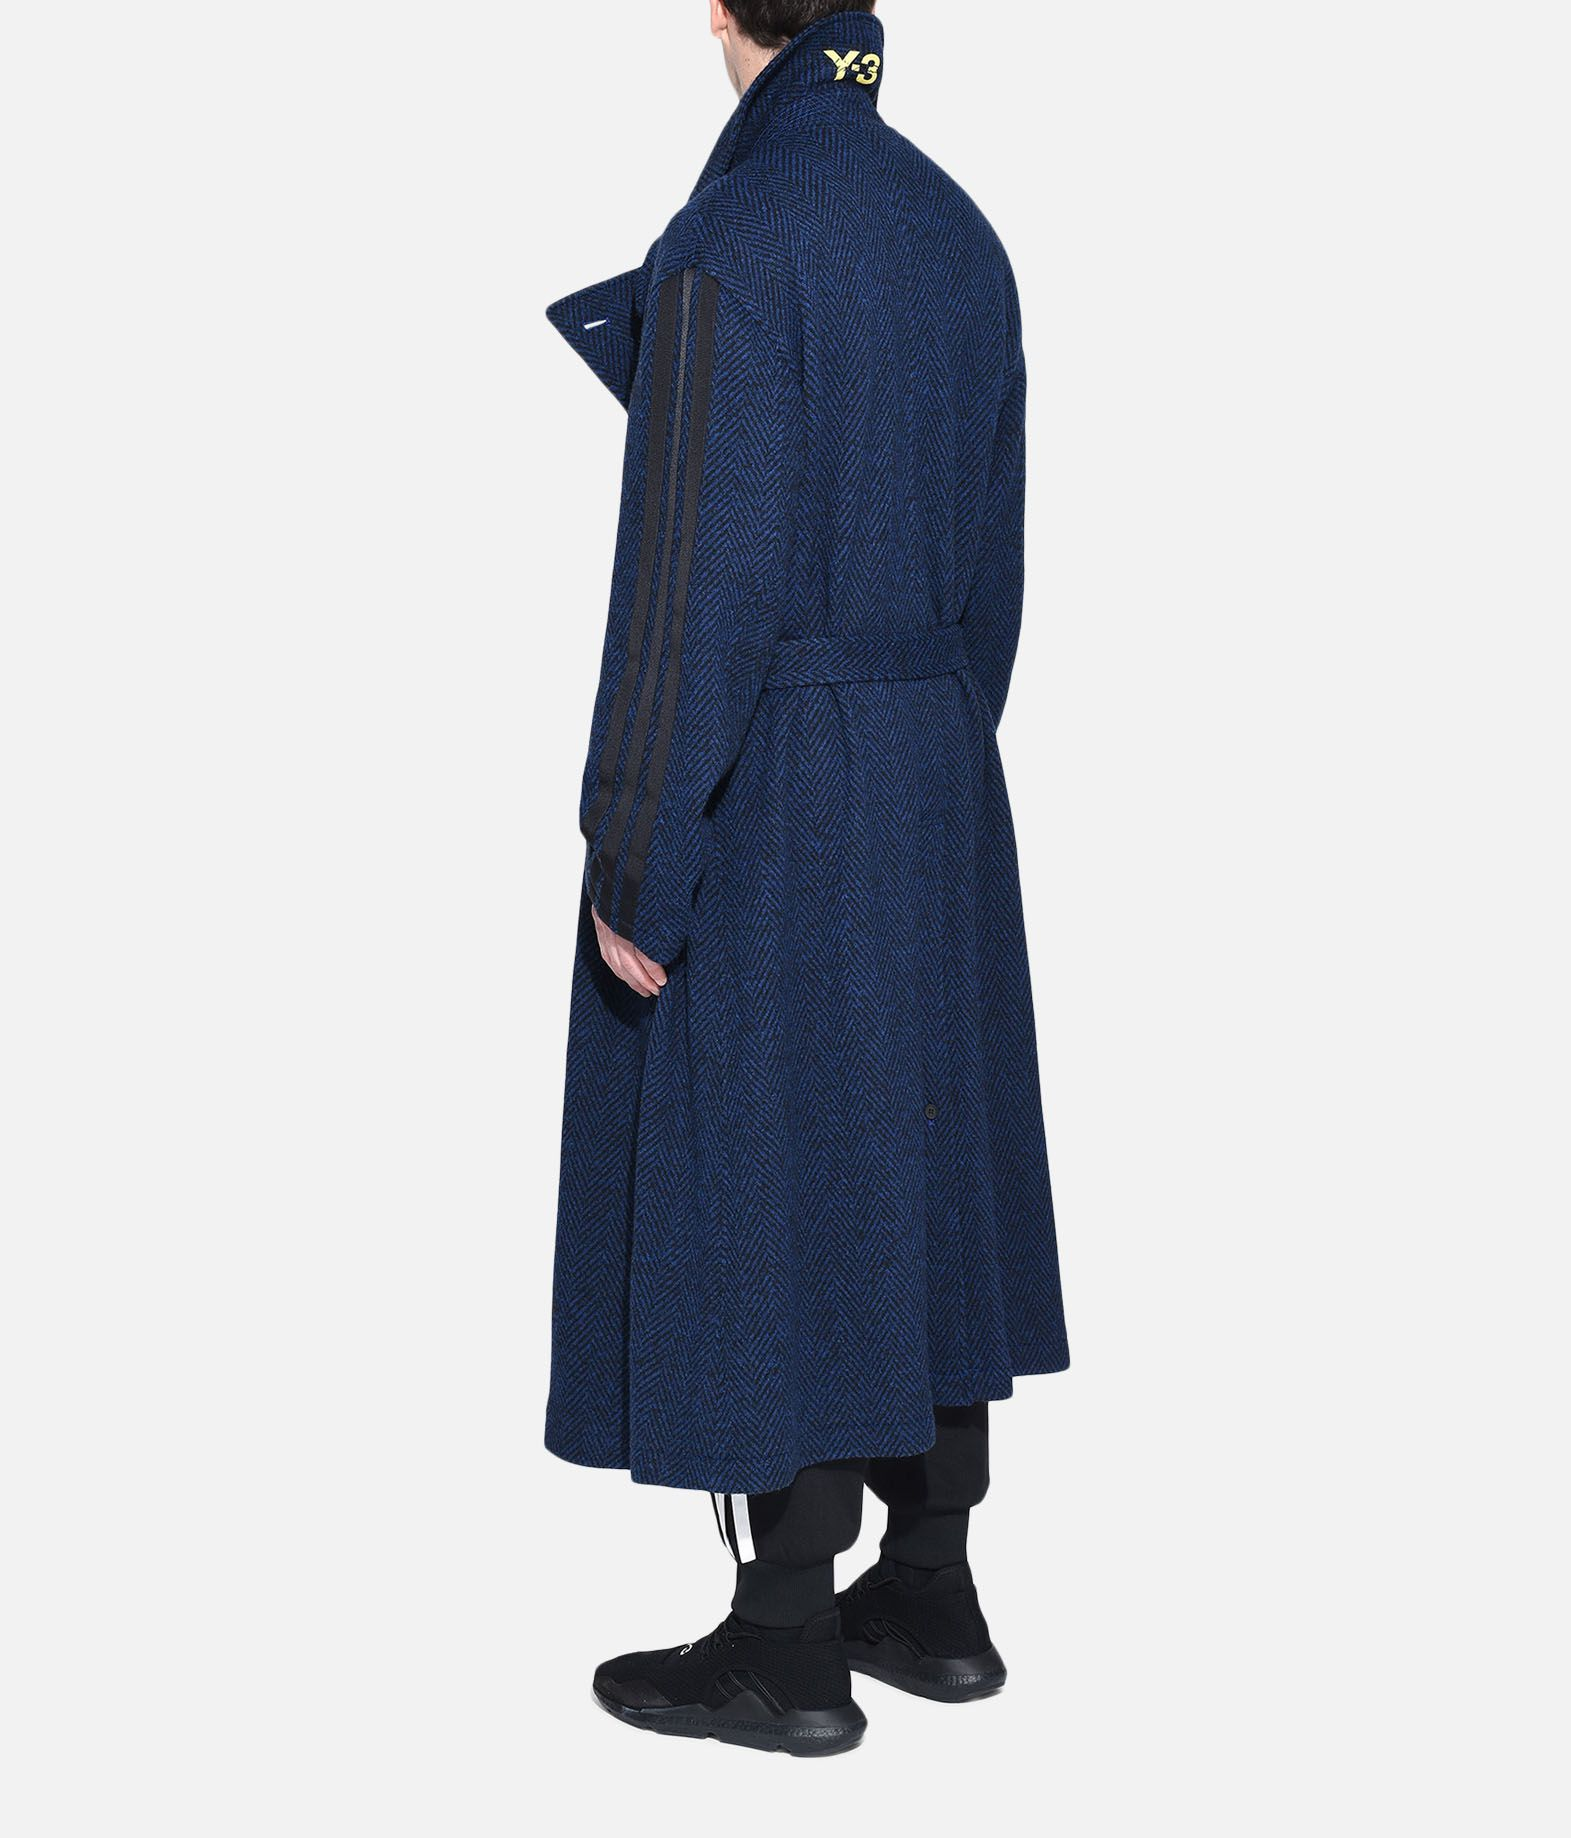 Y-3 Y-3 Tailored Wool Coat コート メンズ e